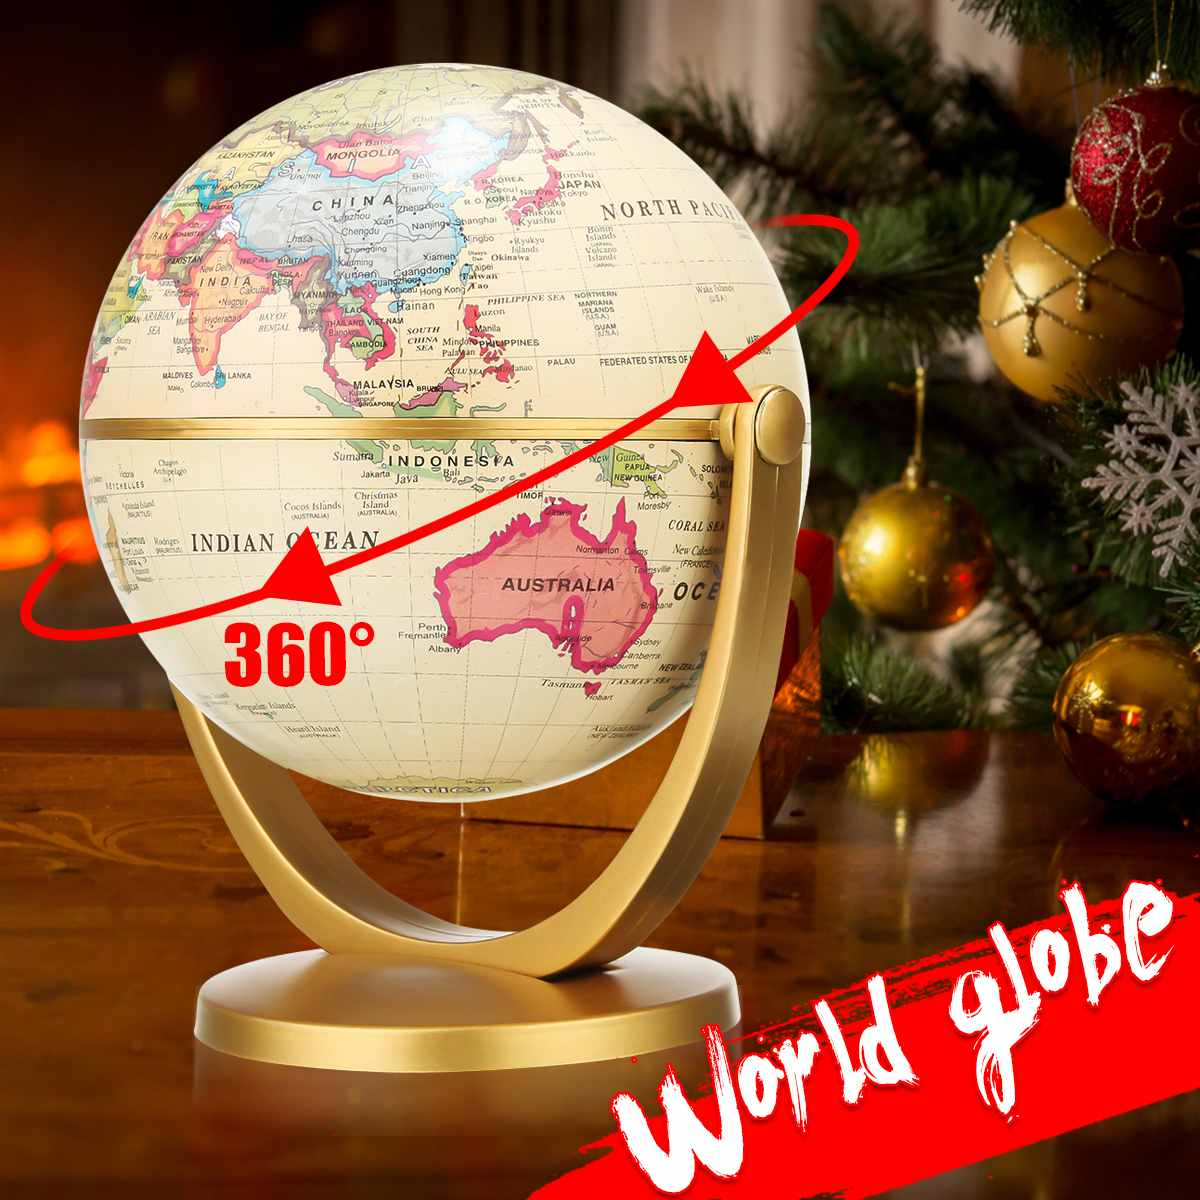 12cm 360° Rotating Retro World Globe Earth Ocean Map Ball Antique Desktop Geography Learning Educational Home School Decoration